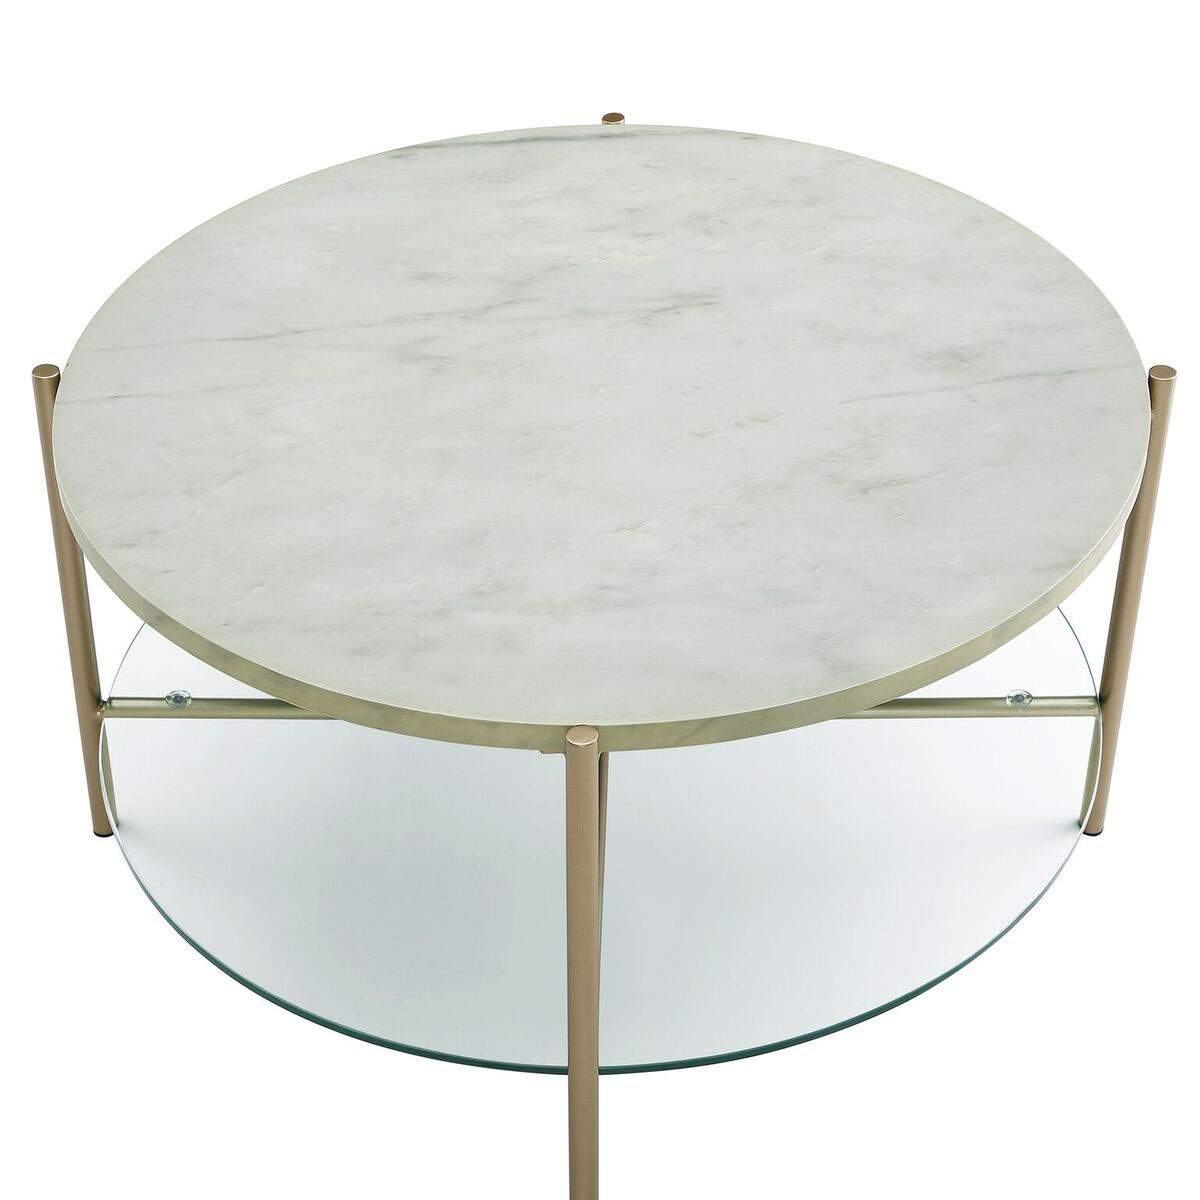 We Furniture 32 Round Coffee Table White Marble Top Glass Shelf Gold Legs Coffee Tables Aliexpress